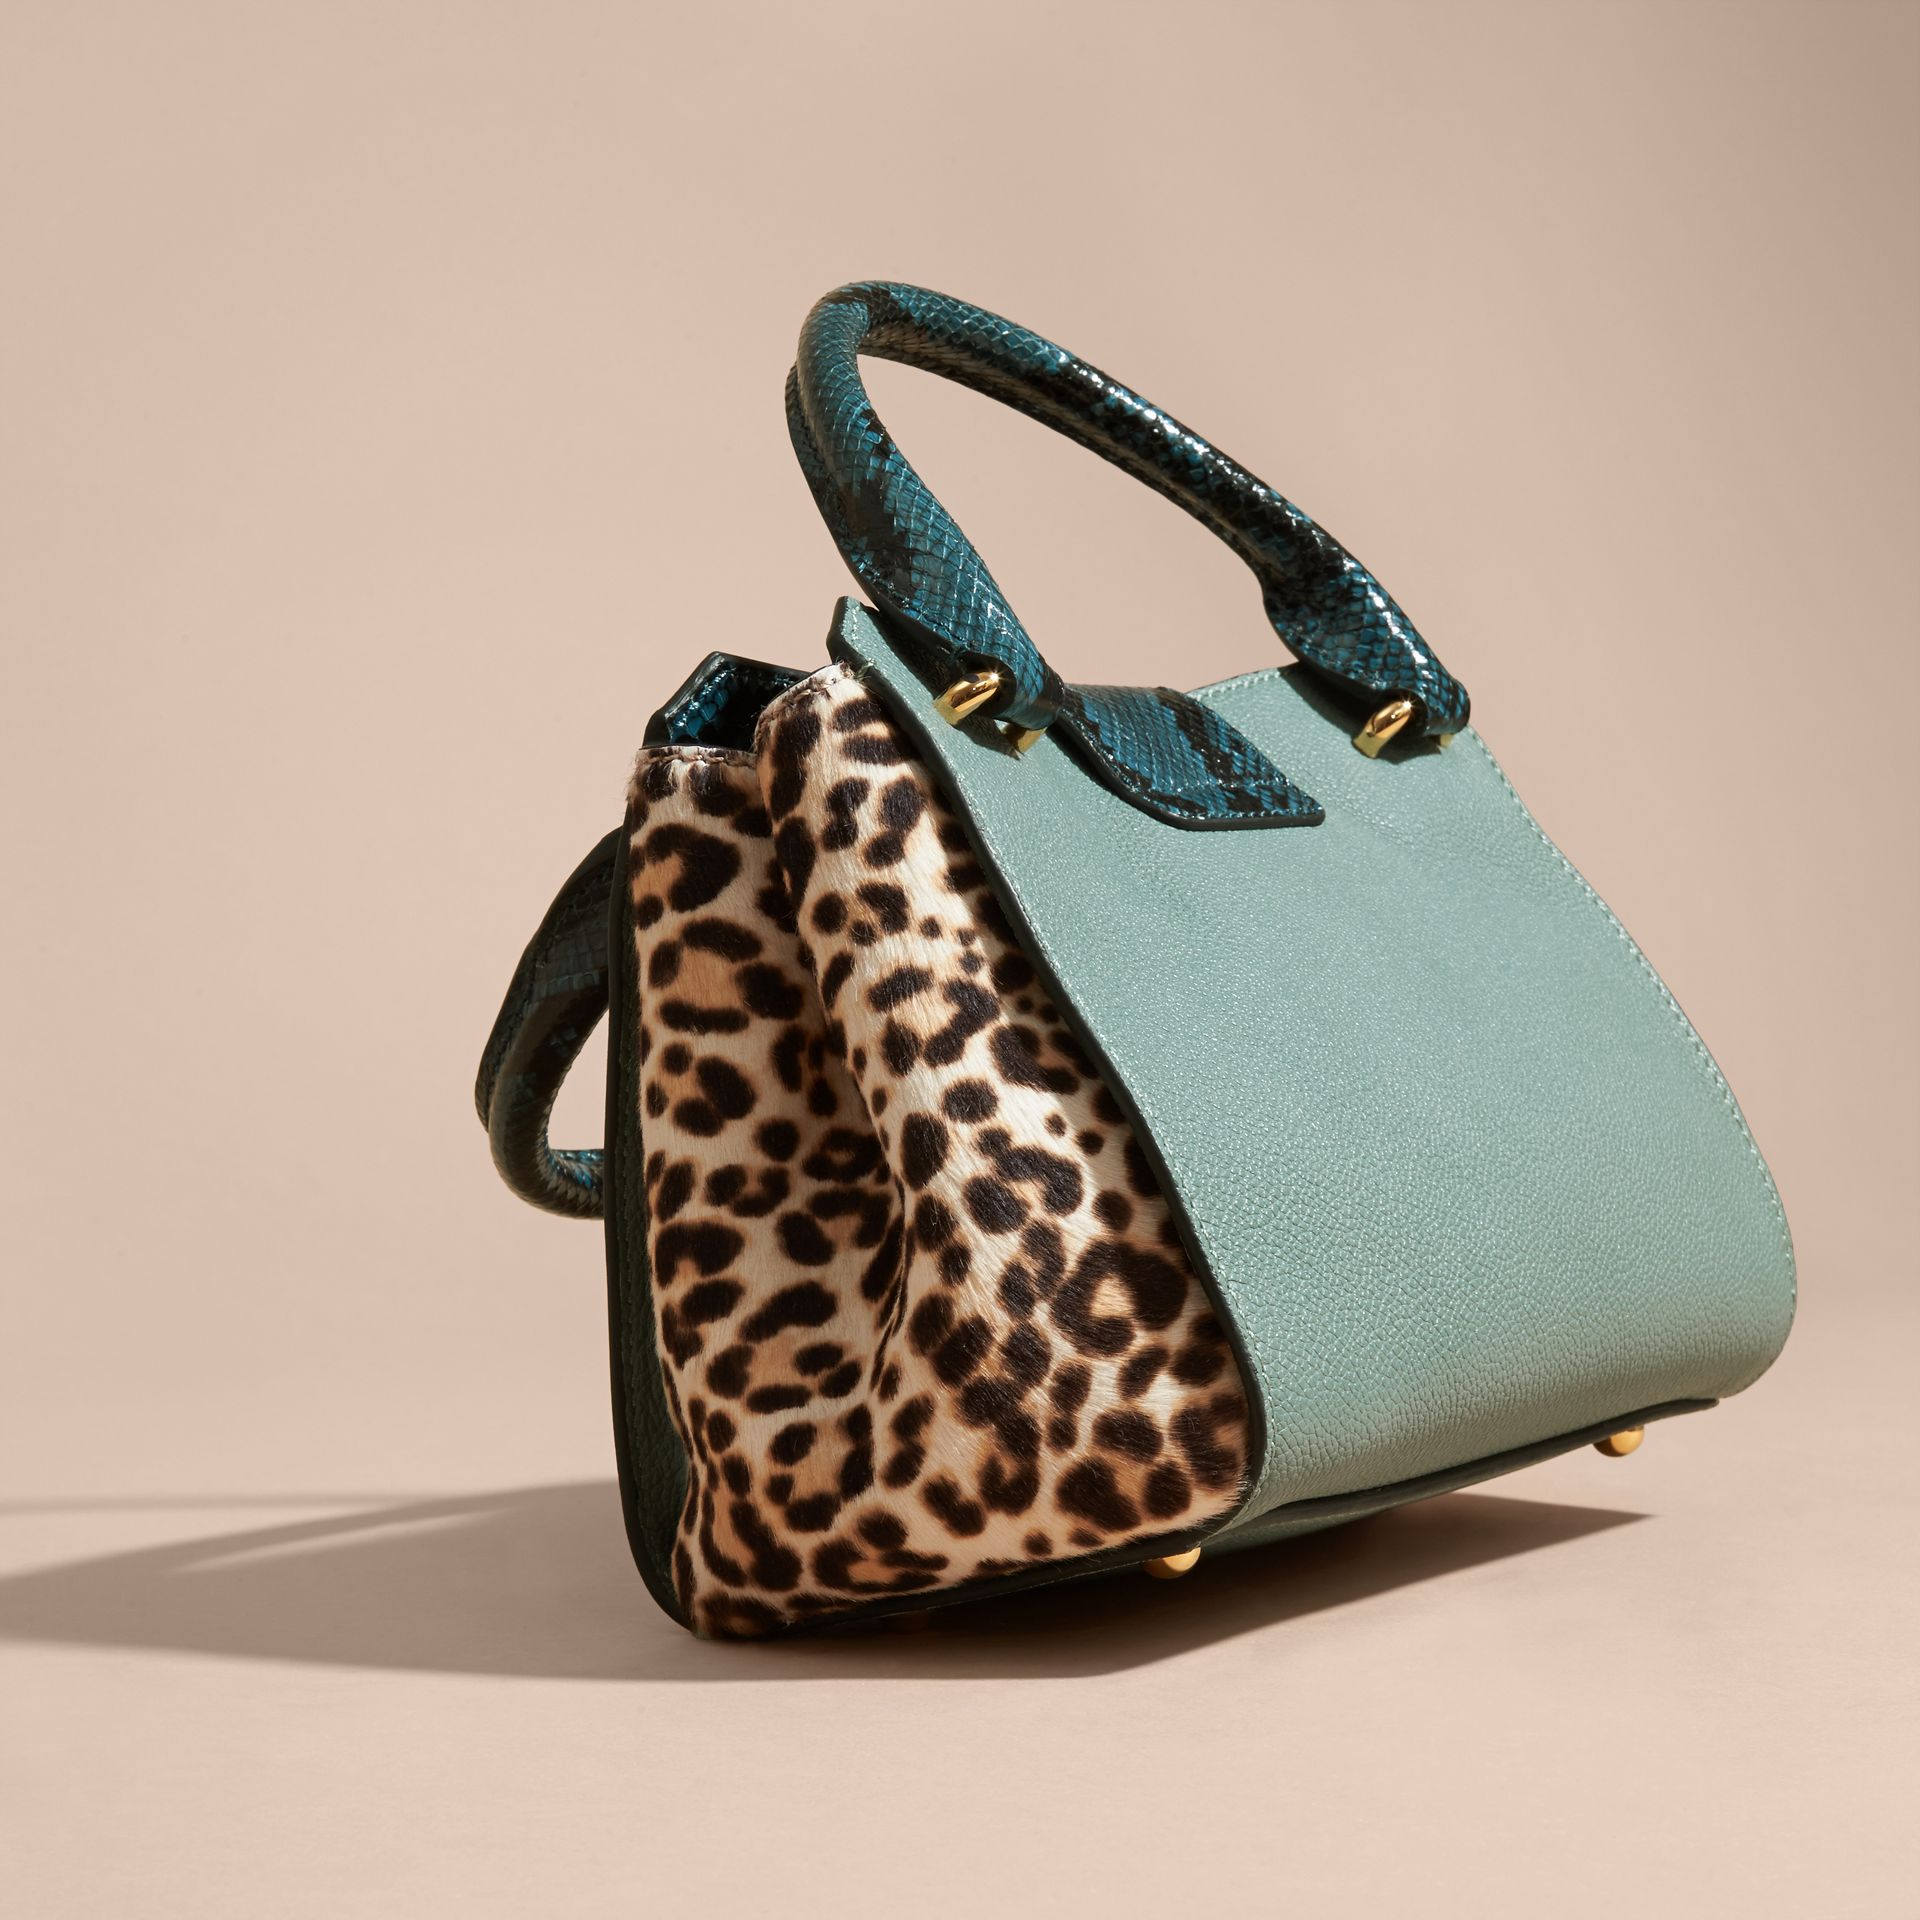 The Small Buckle Tote in Leather and  Leopard-print Calfskin in Eucalyptus Green - gallery image 5